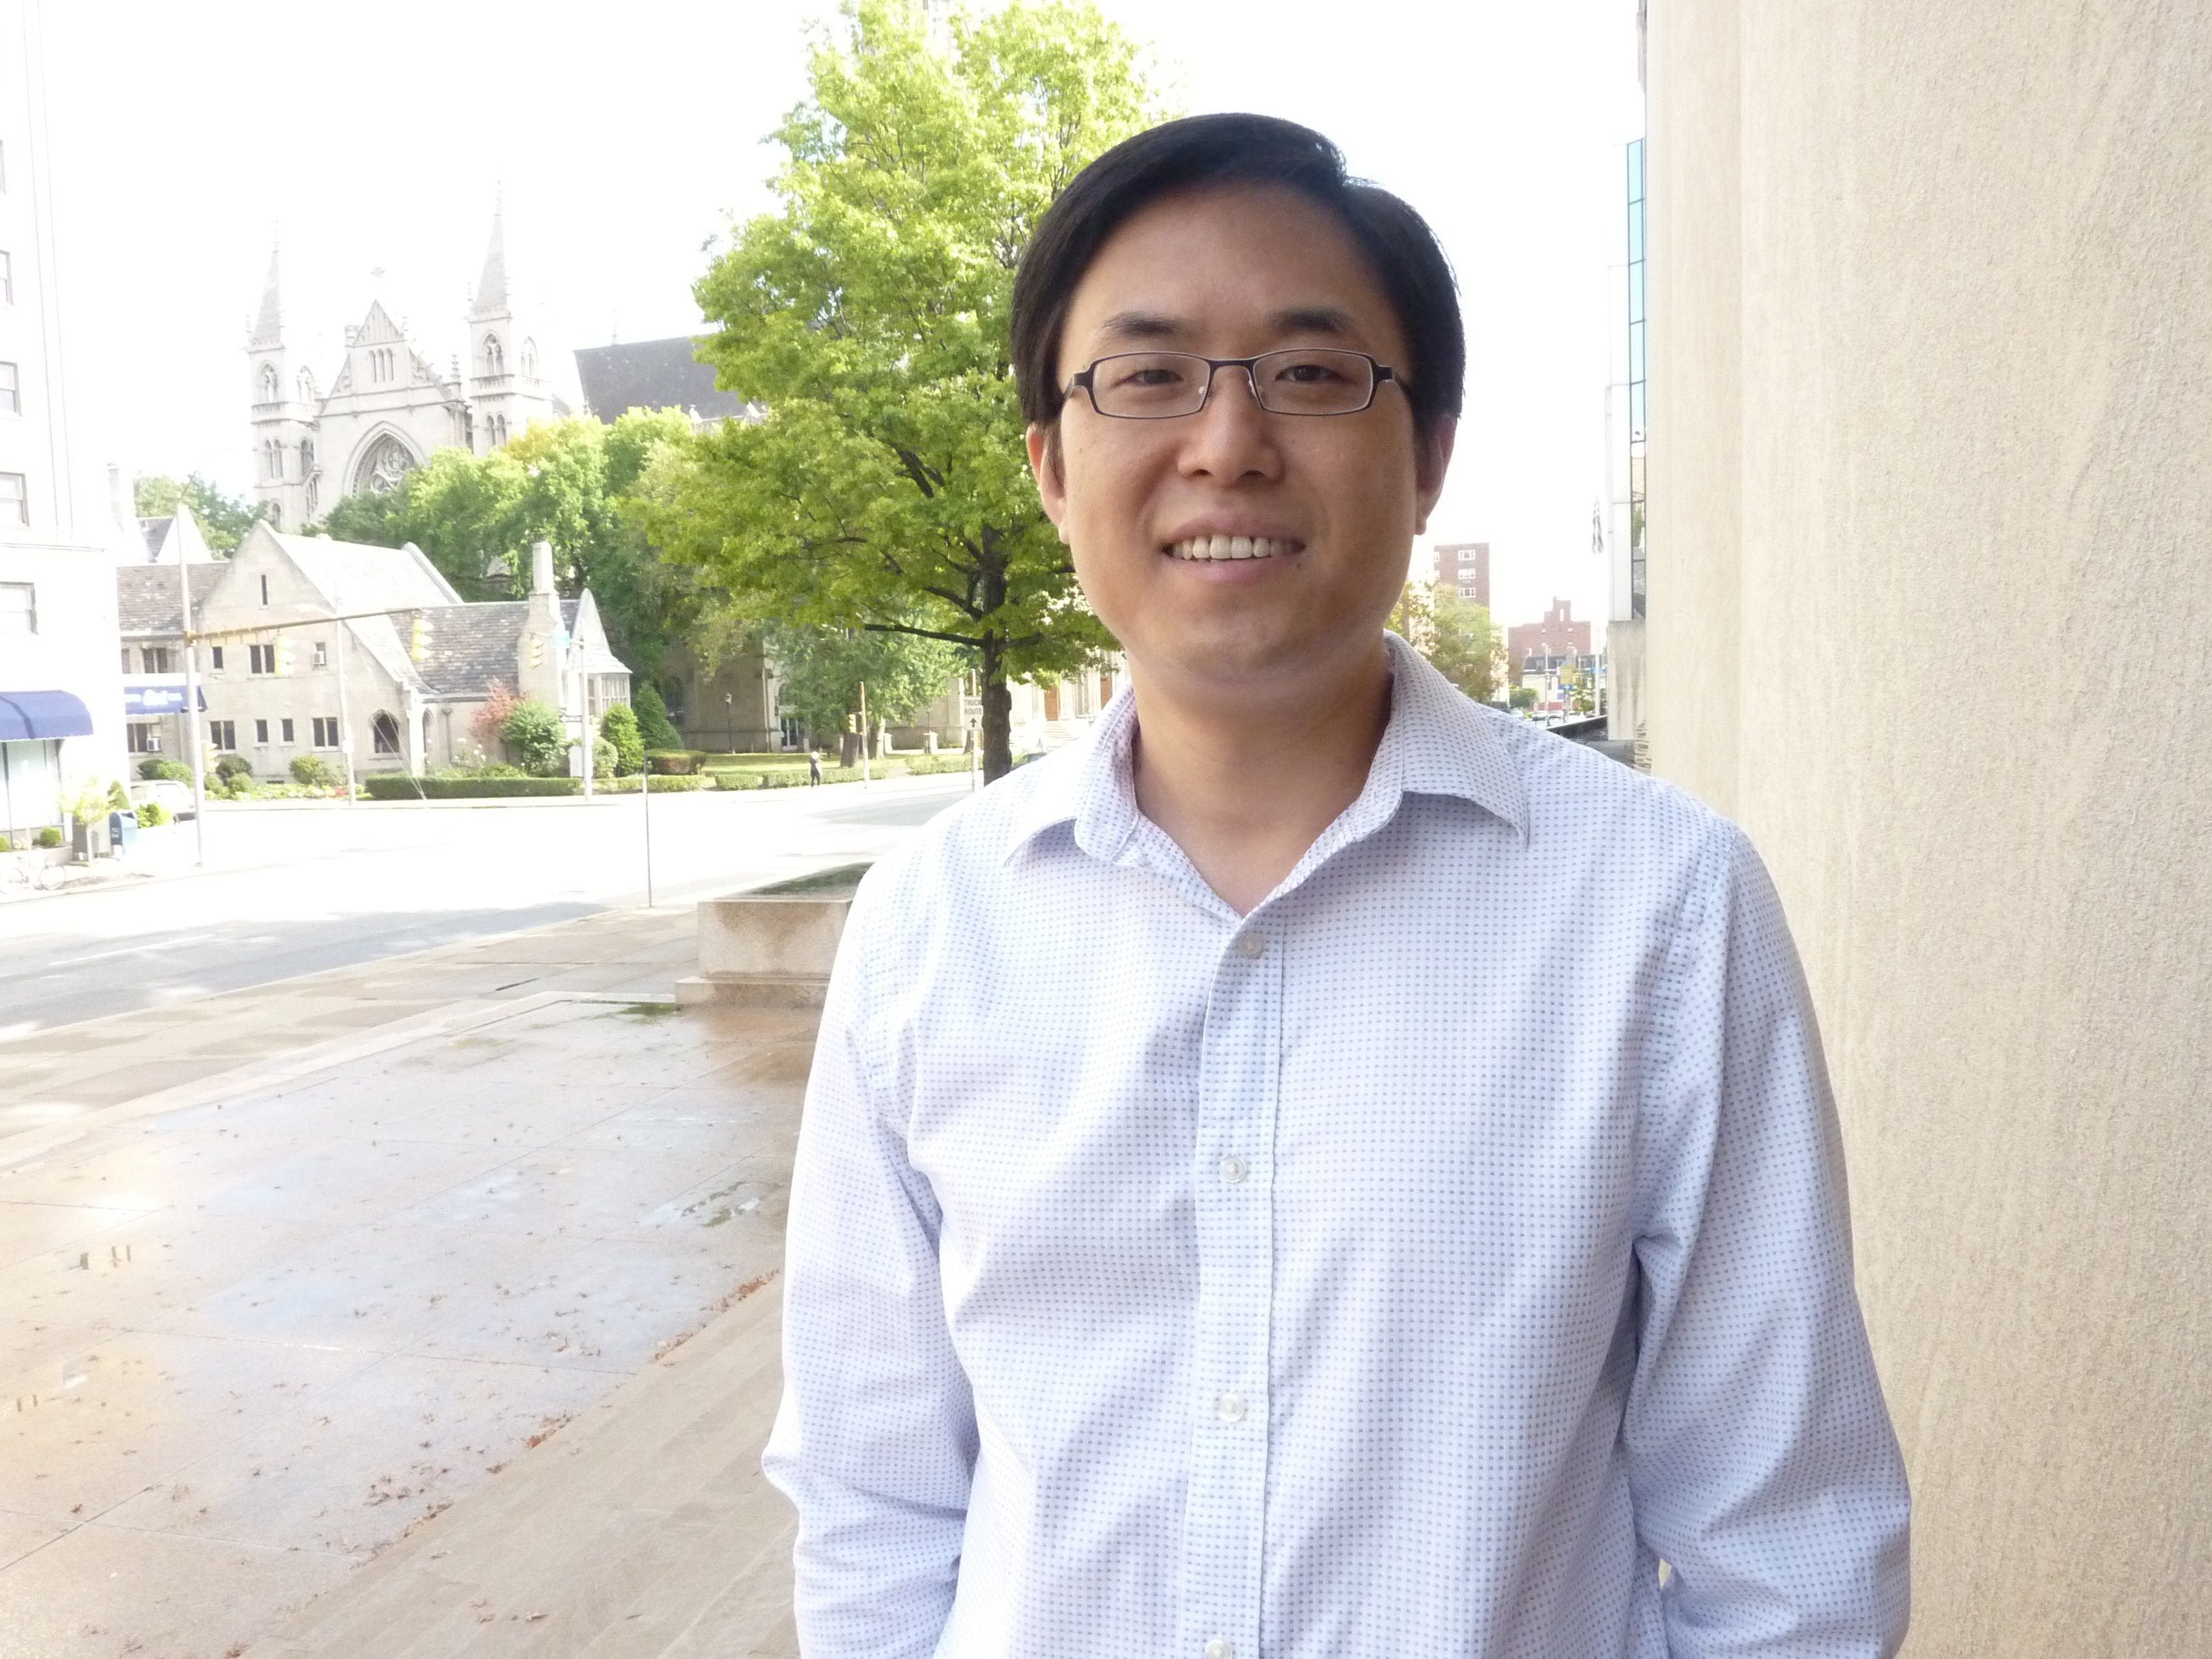 Yisong Guo, an assistant professor of chemistry, studies carbapenems, antibiotics used to treat drug-resistant bacterial infections. (credit: Courtesy of Yisong Guo)